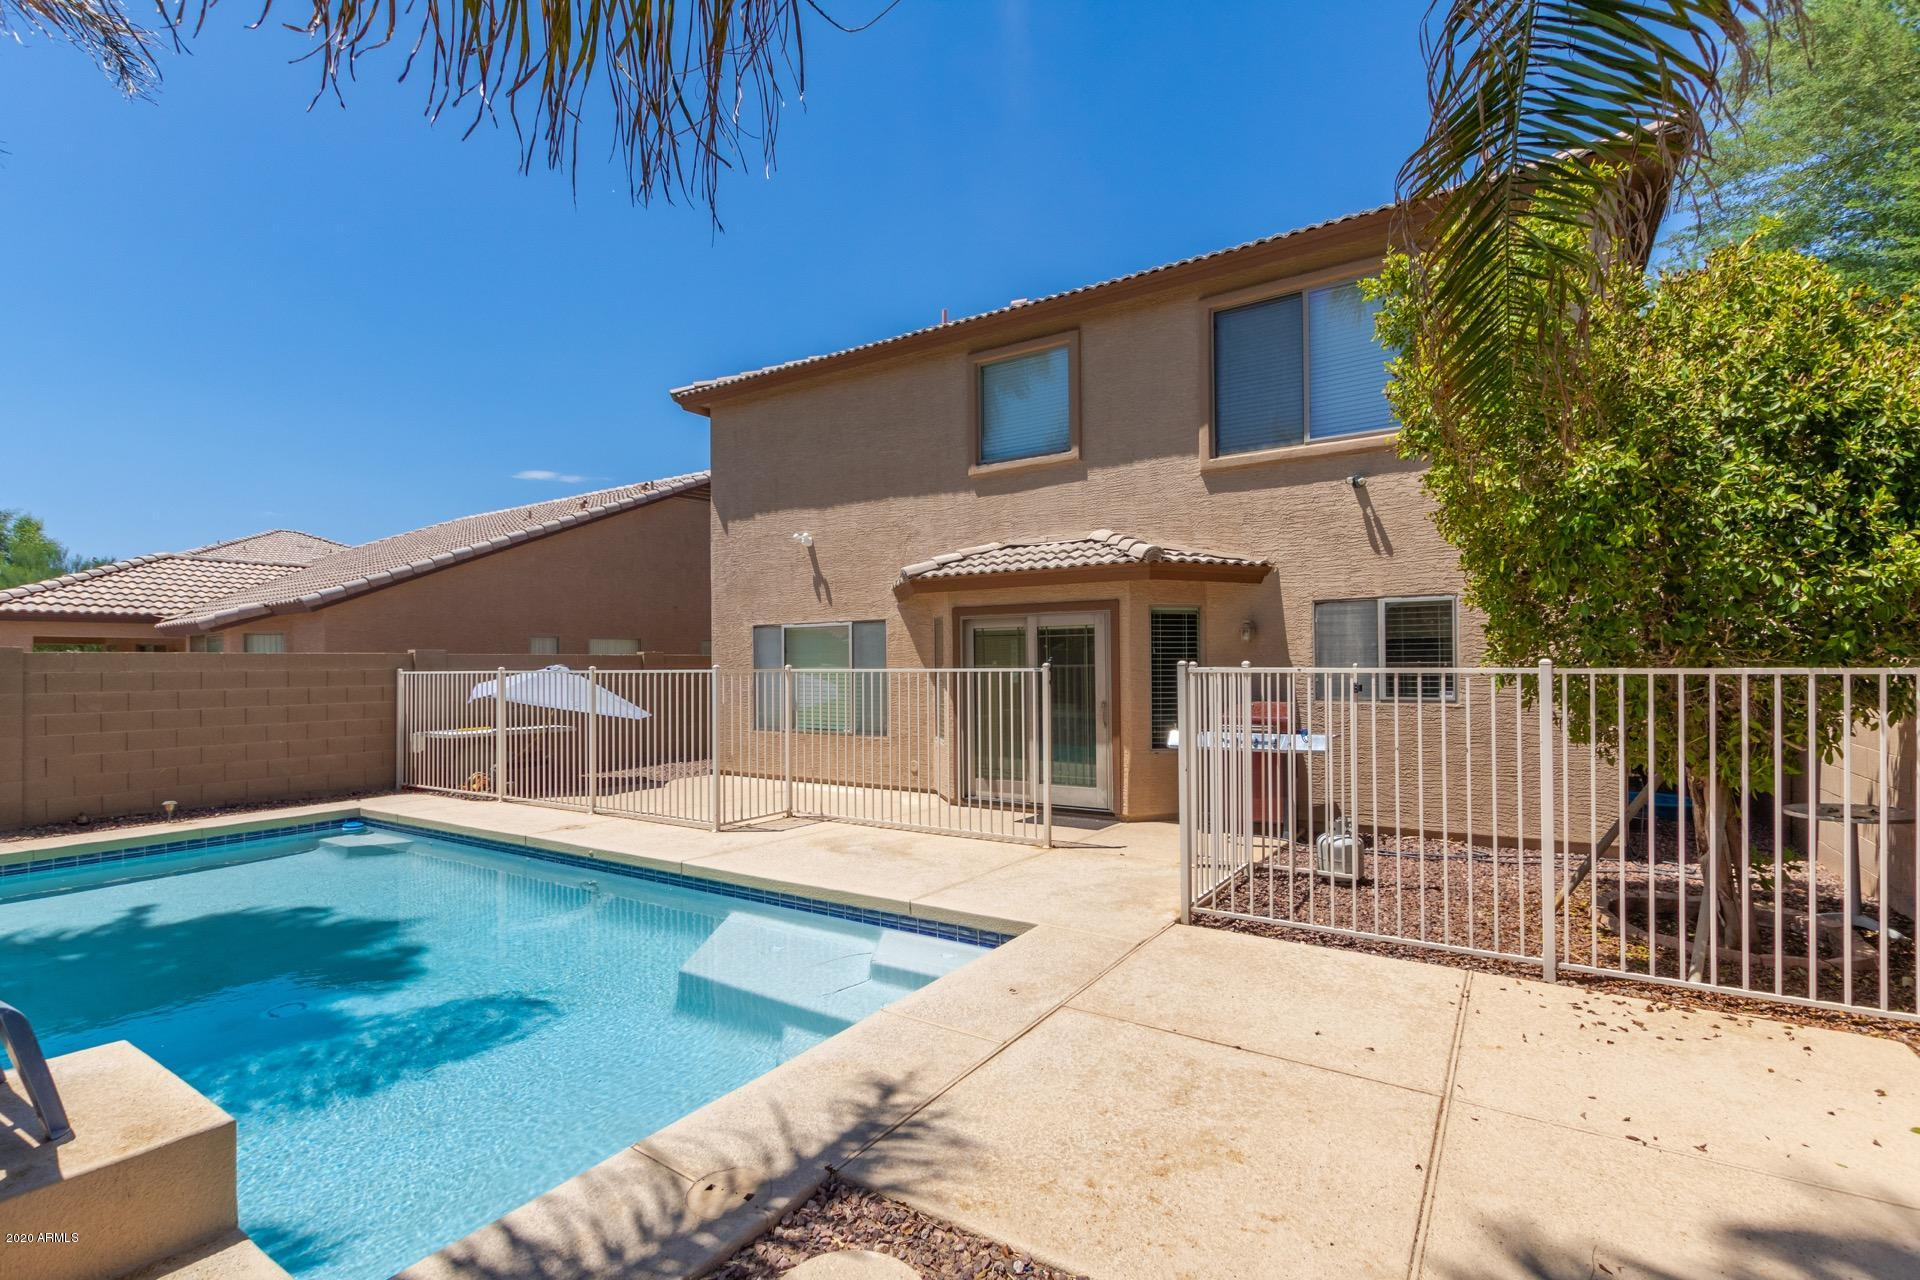 MLS 6106699 11809 W JOBLANCA Road, Avondale, AZ 85323 Avondale AZ Private Pool